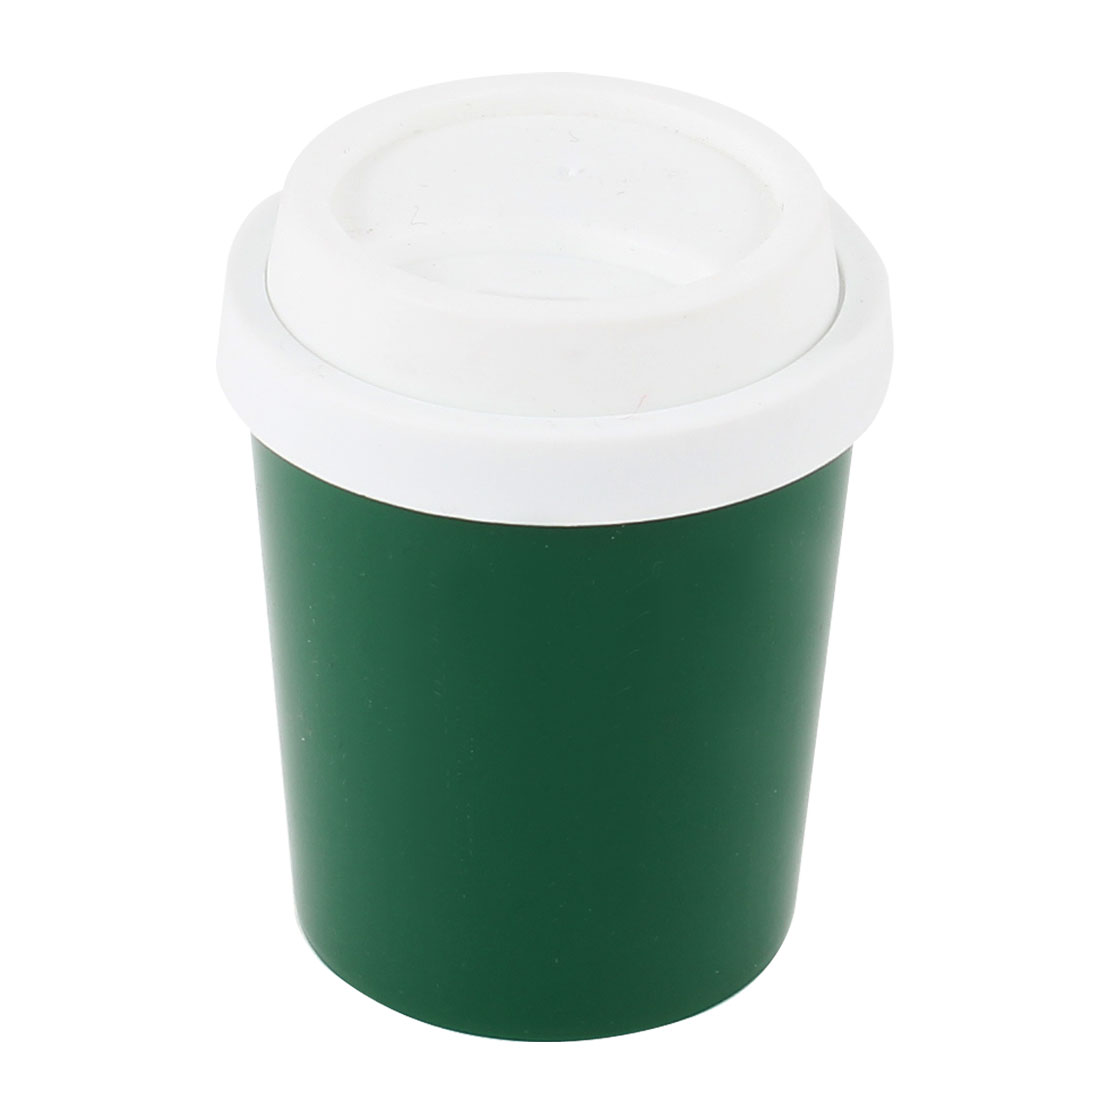 Home Desk Coffee Cup Shape Plastic Case Box Toothpick Holder White Green